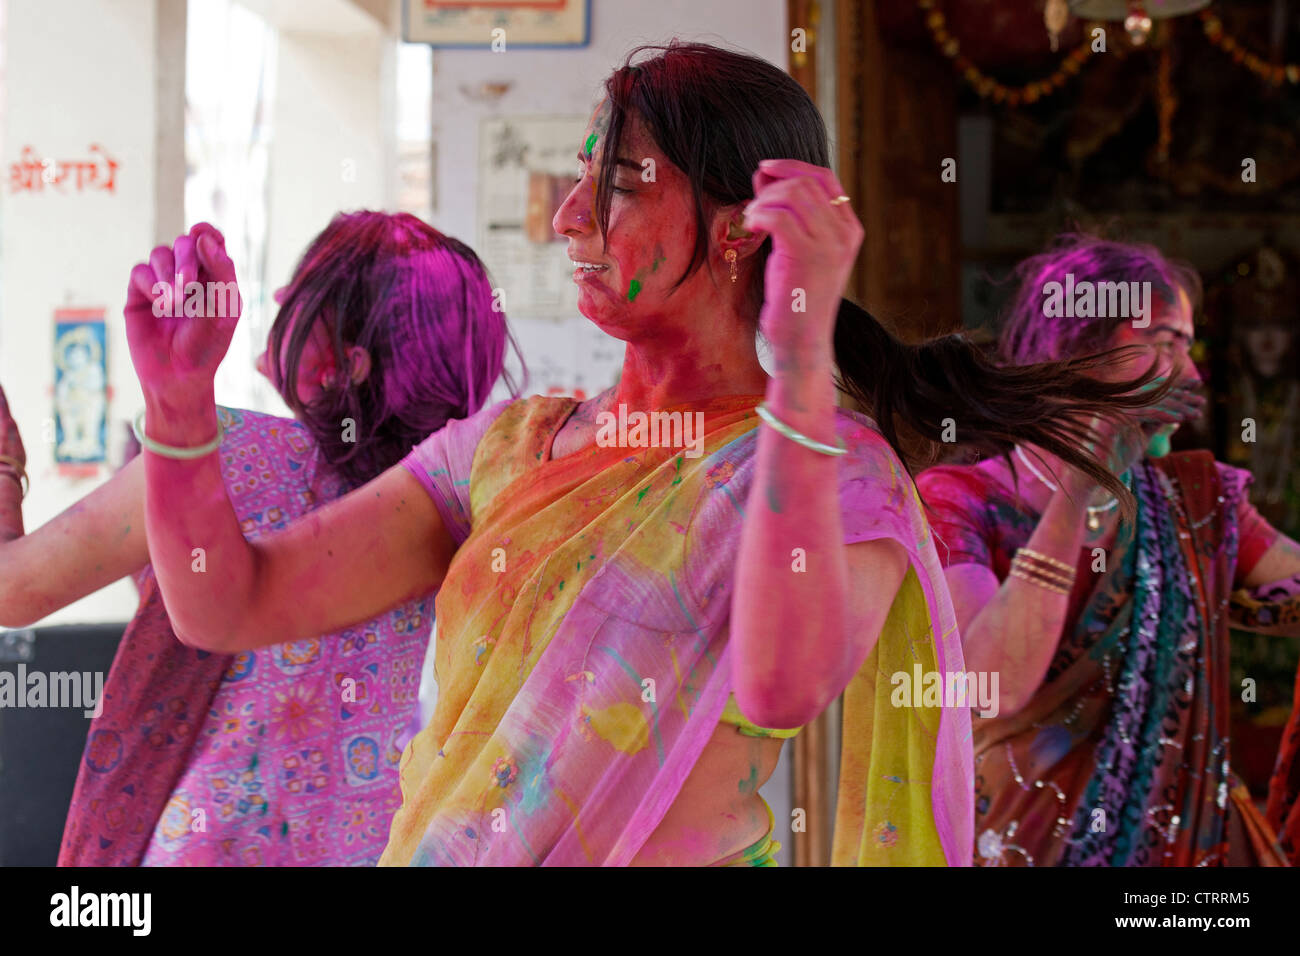 Women covered in colourful dye celebrating the Holi festival, Festival of Colours in Mathura, Uttar Pradesh, India - Stock Image